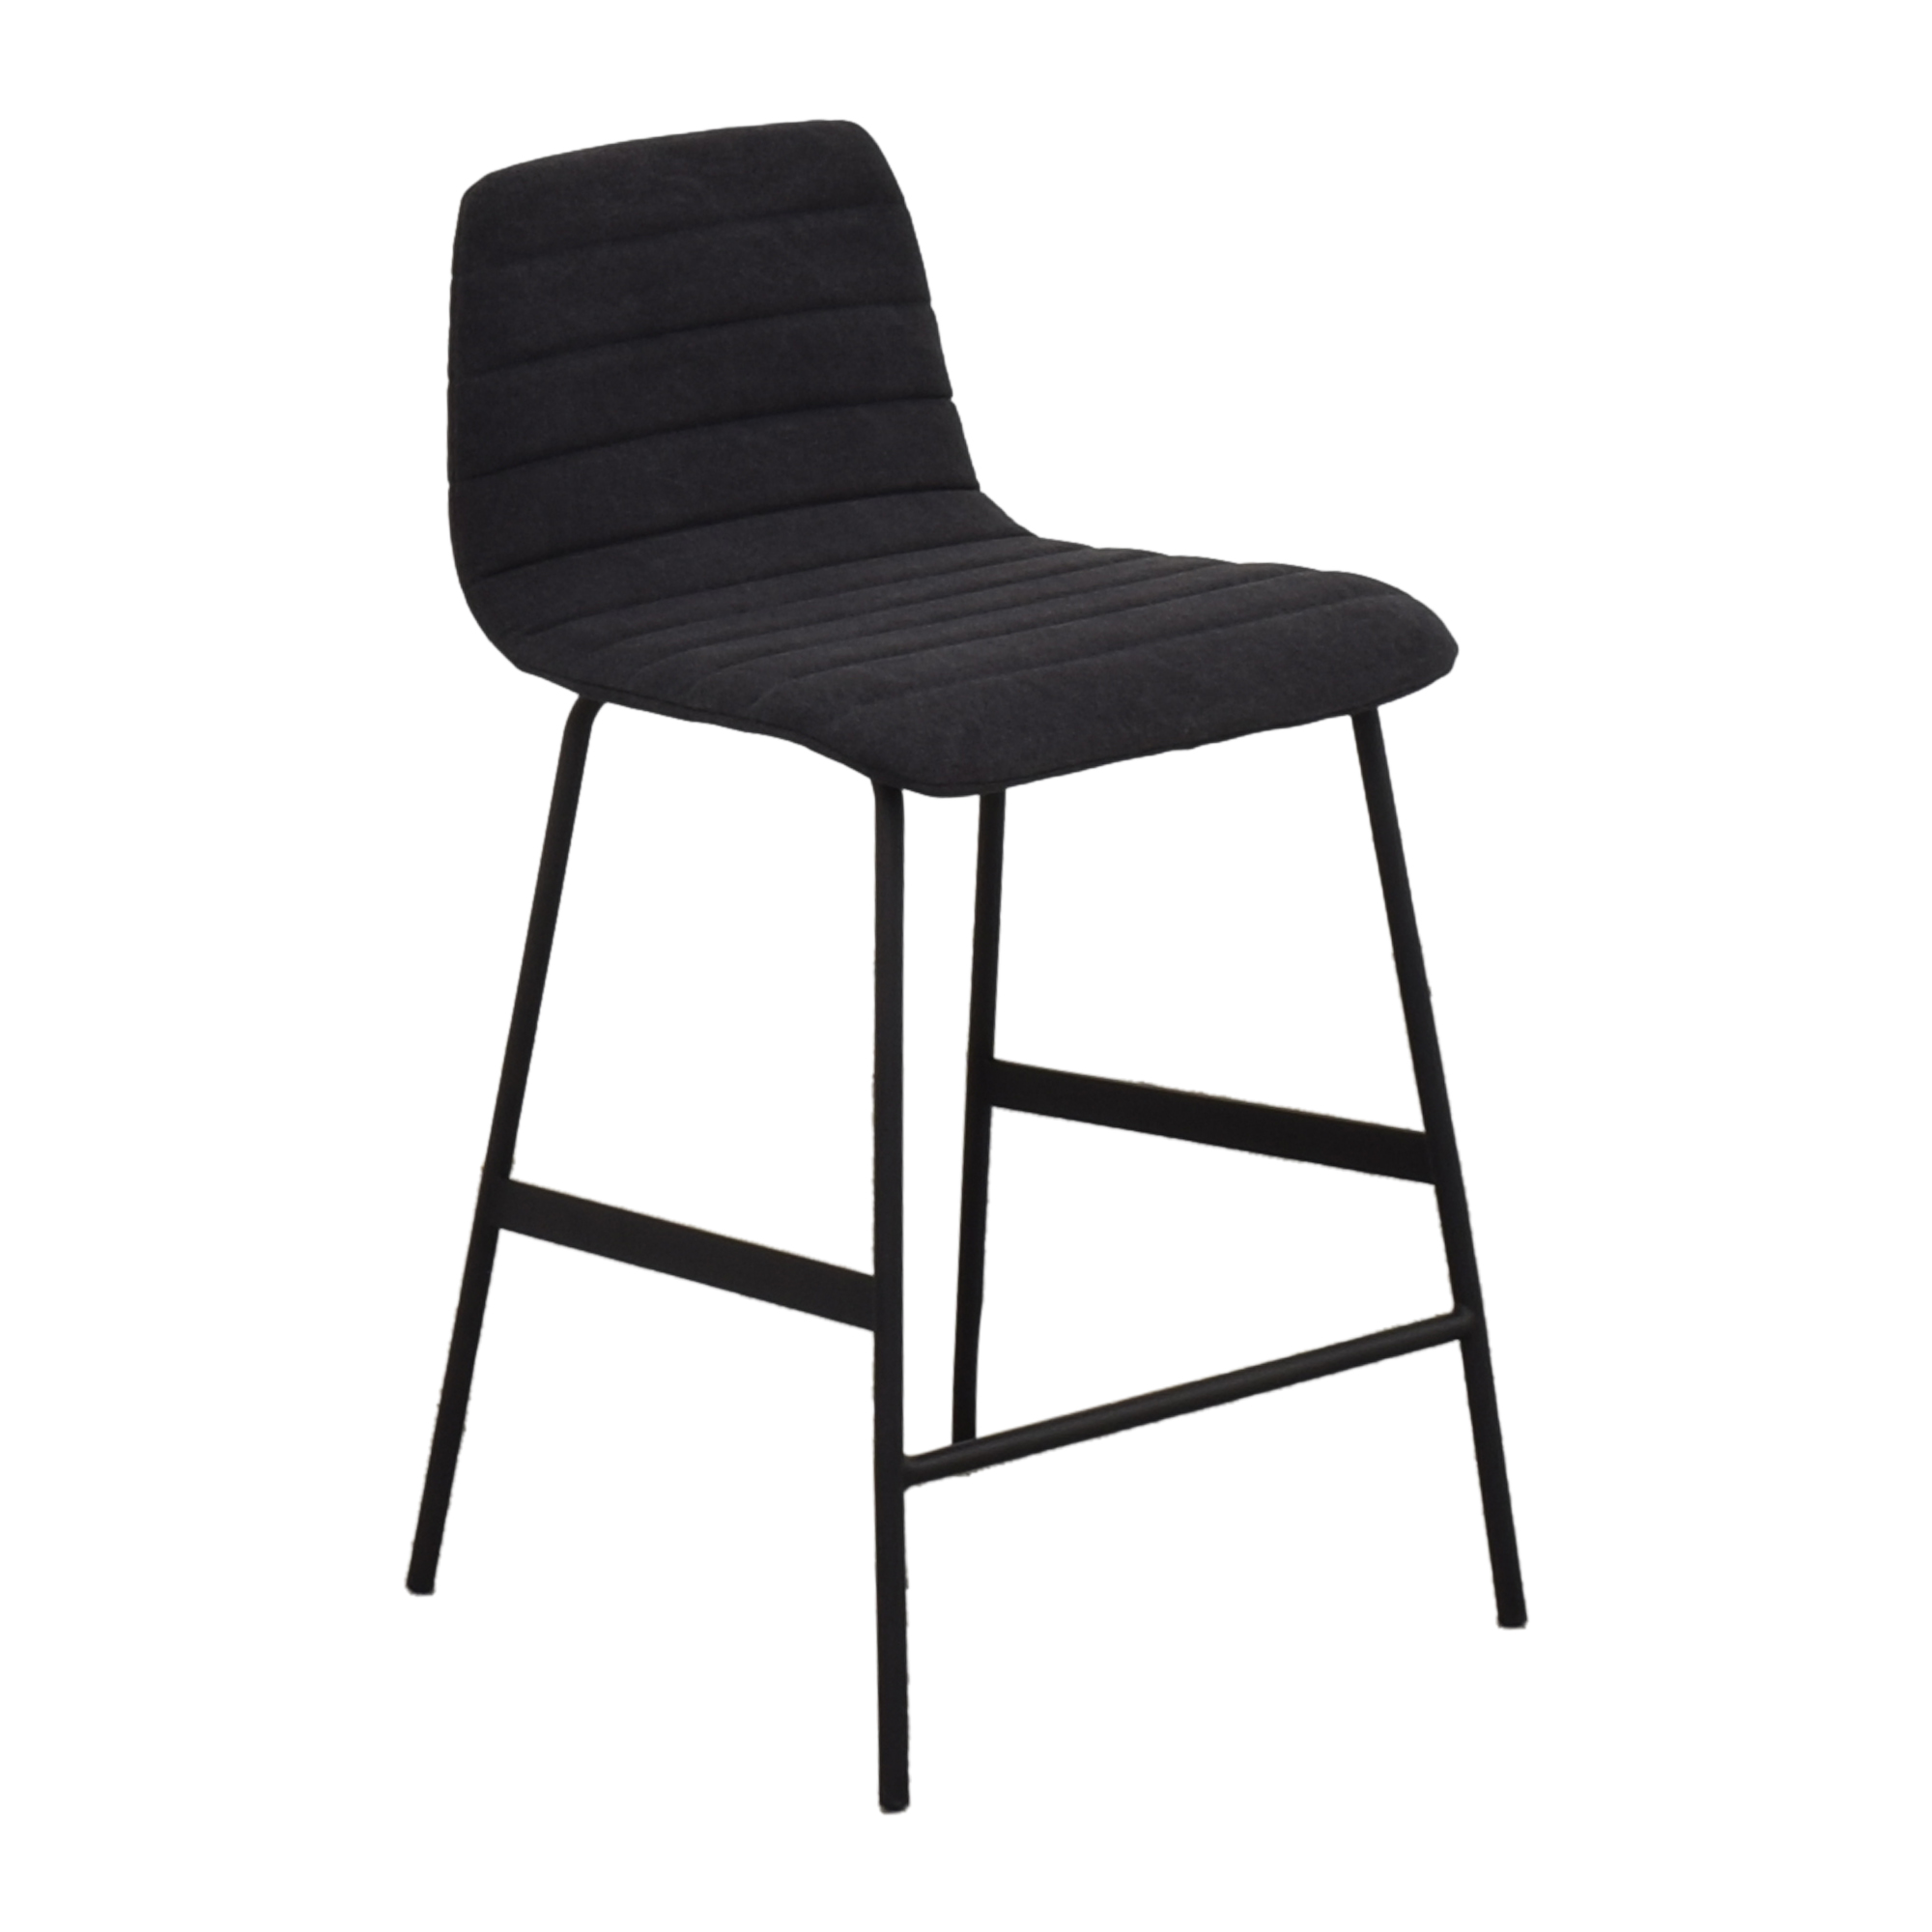 Gus Modern Gus Modern Lecture Stool used